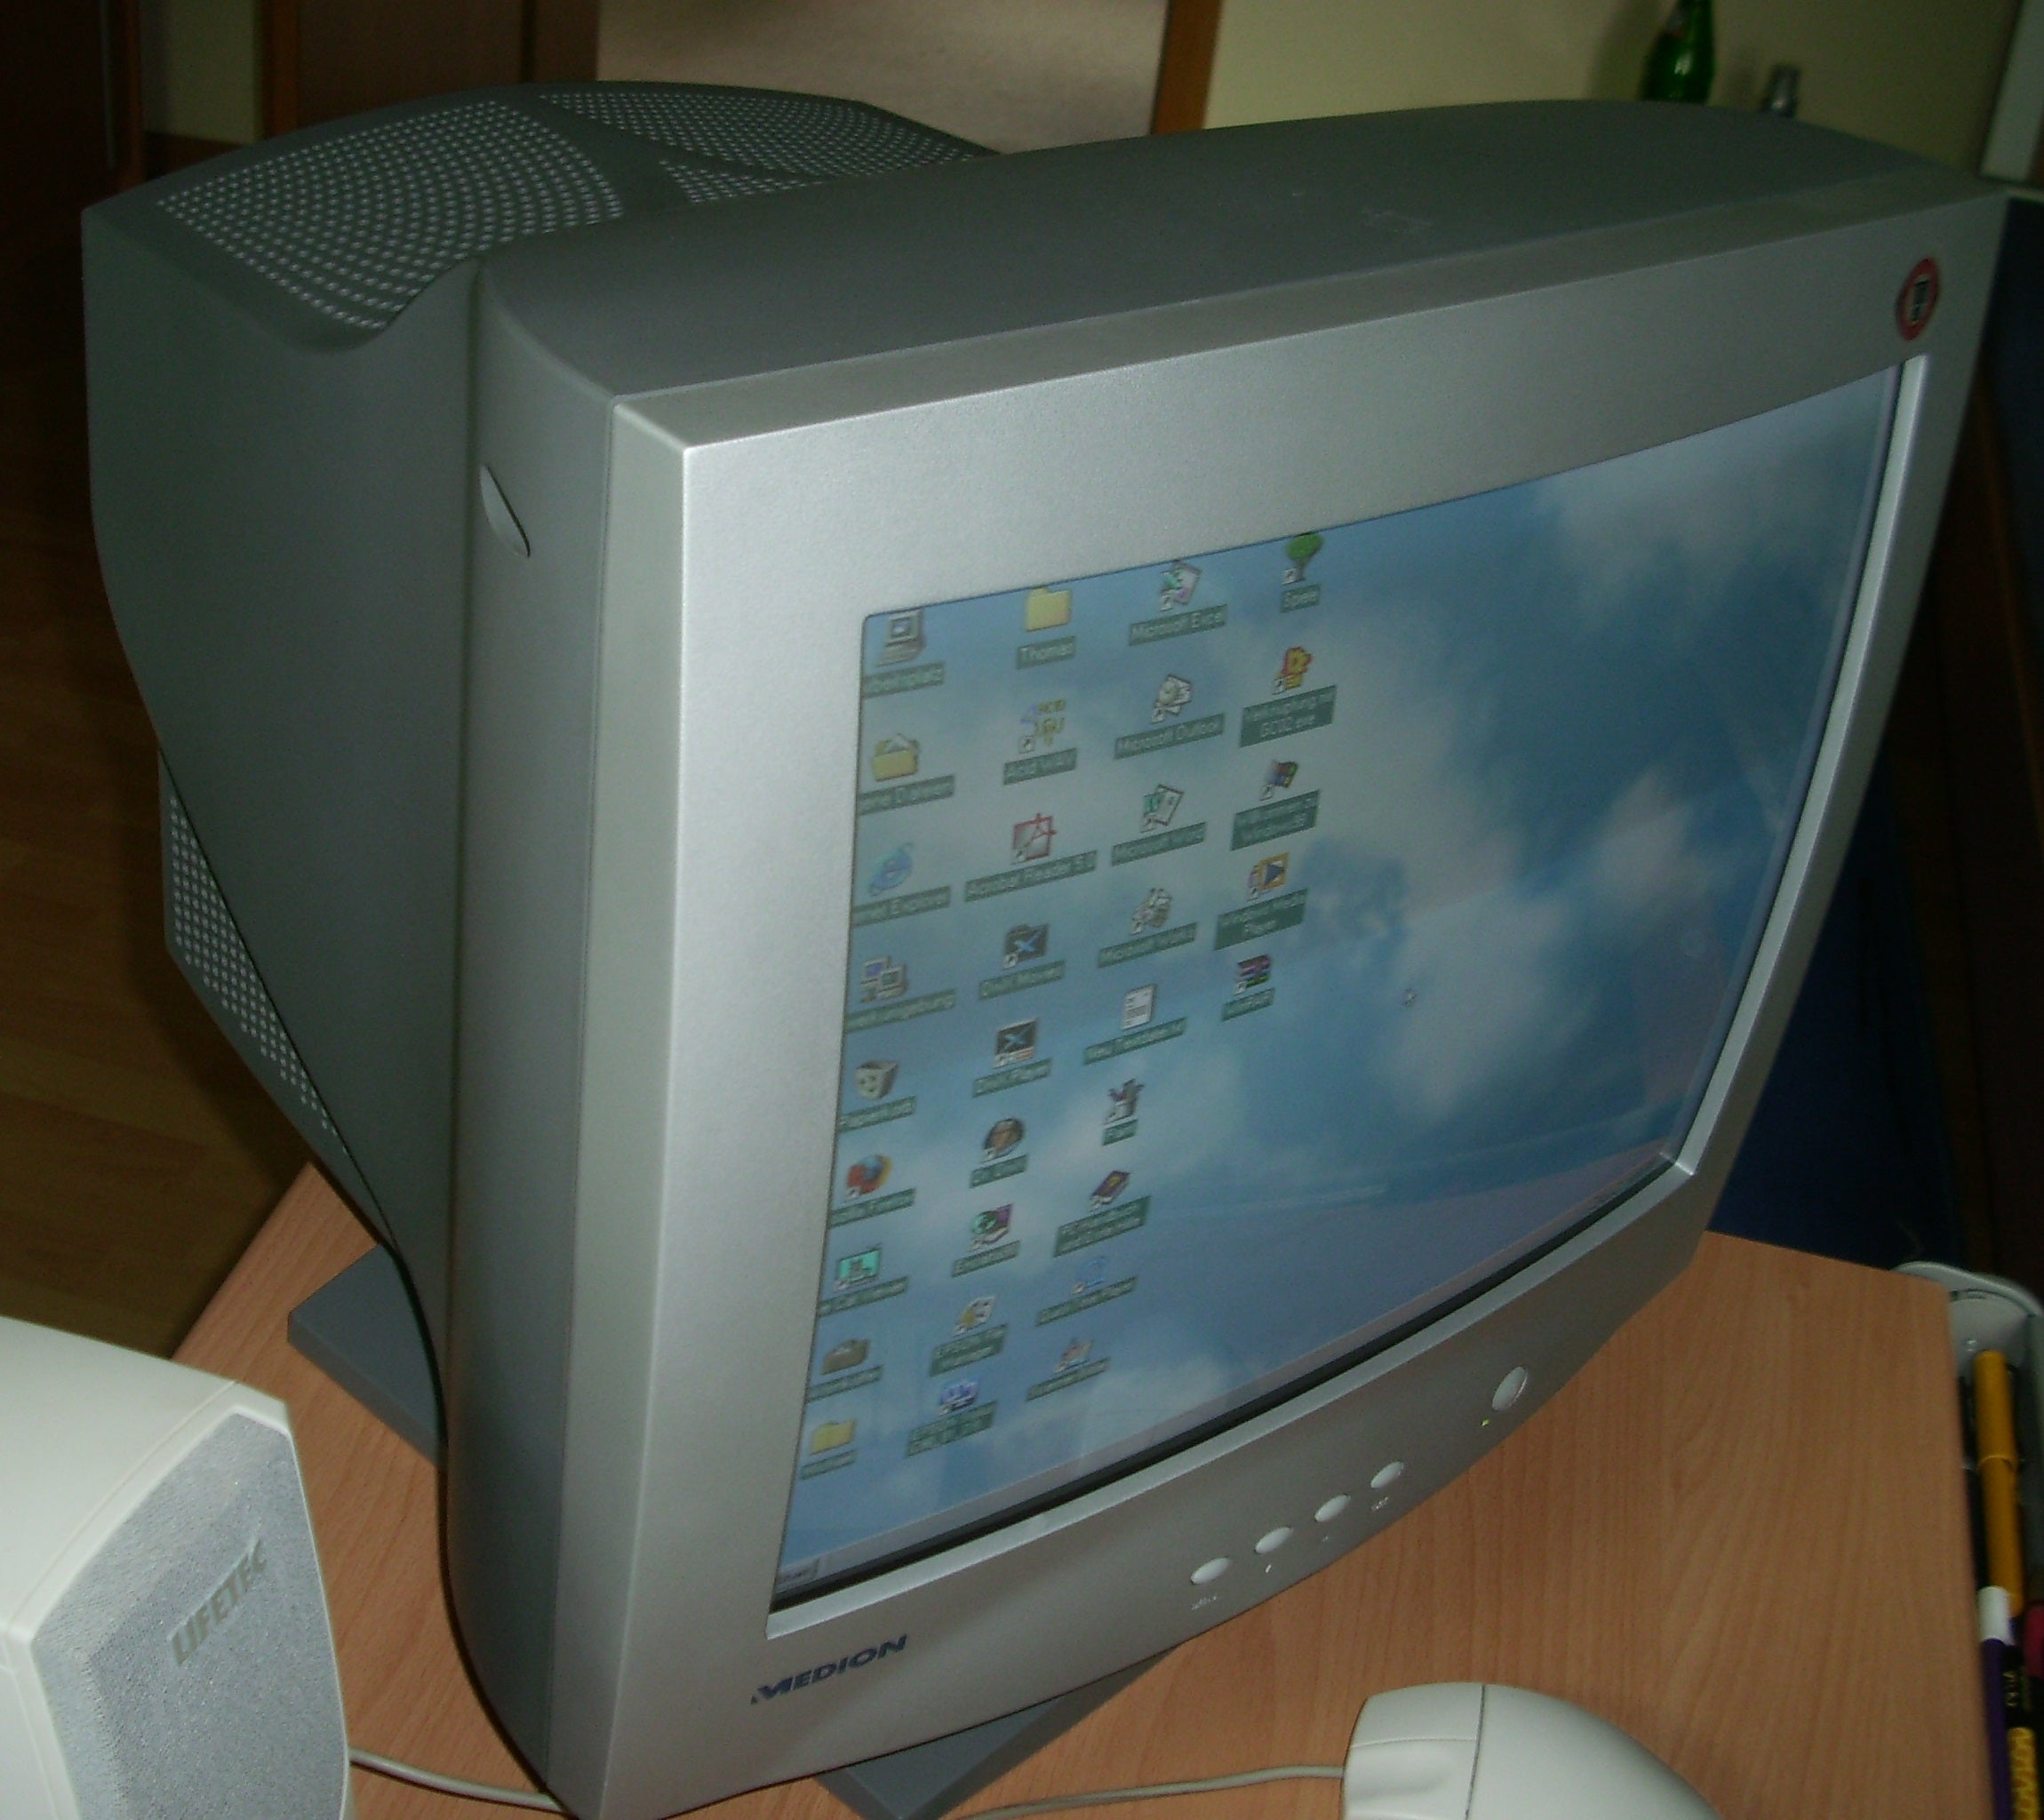 Medion CRT monitor